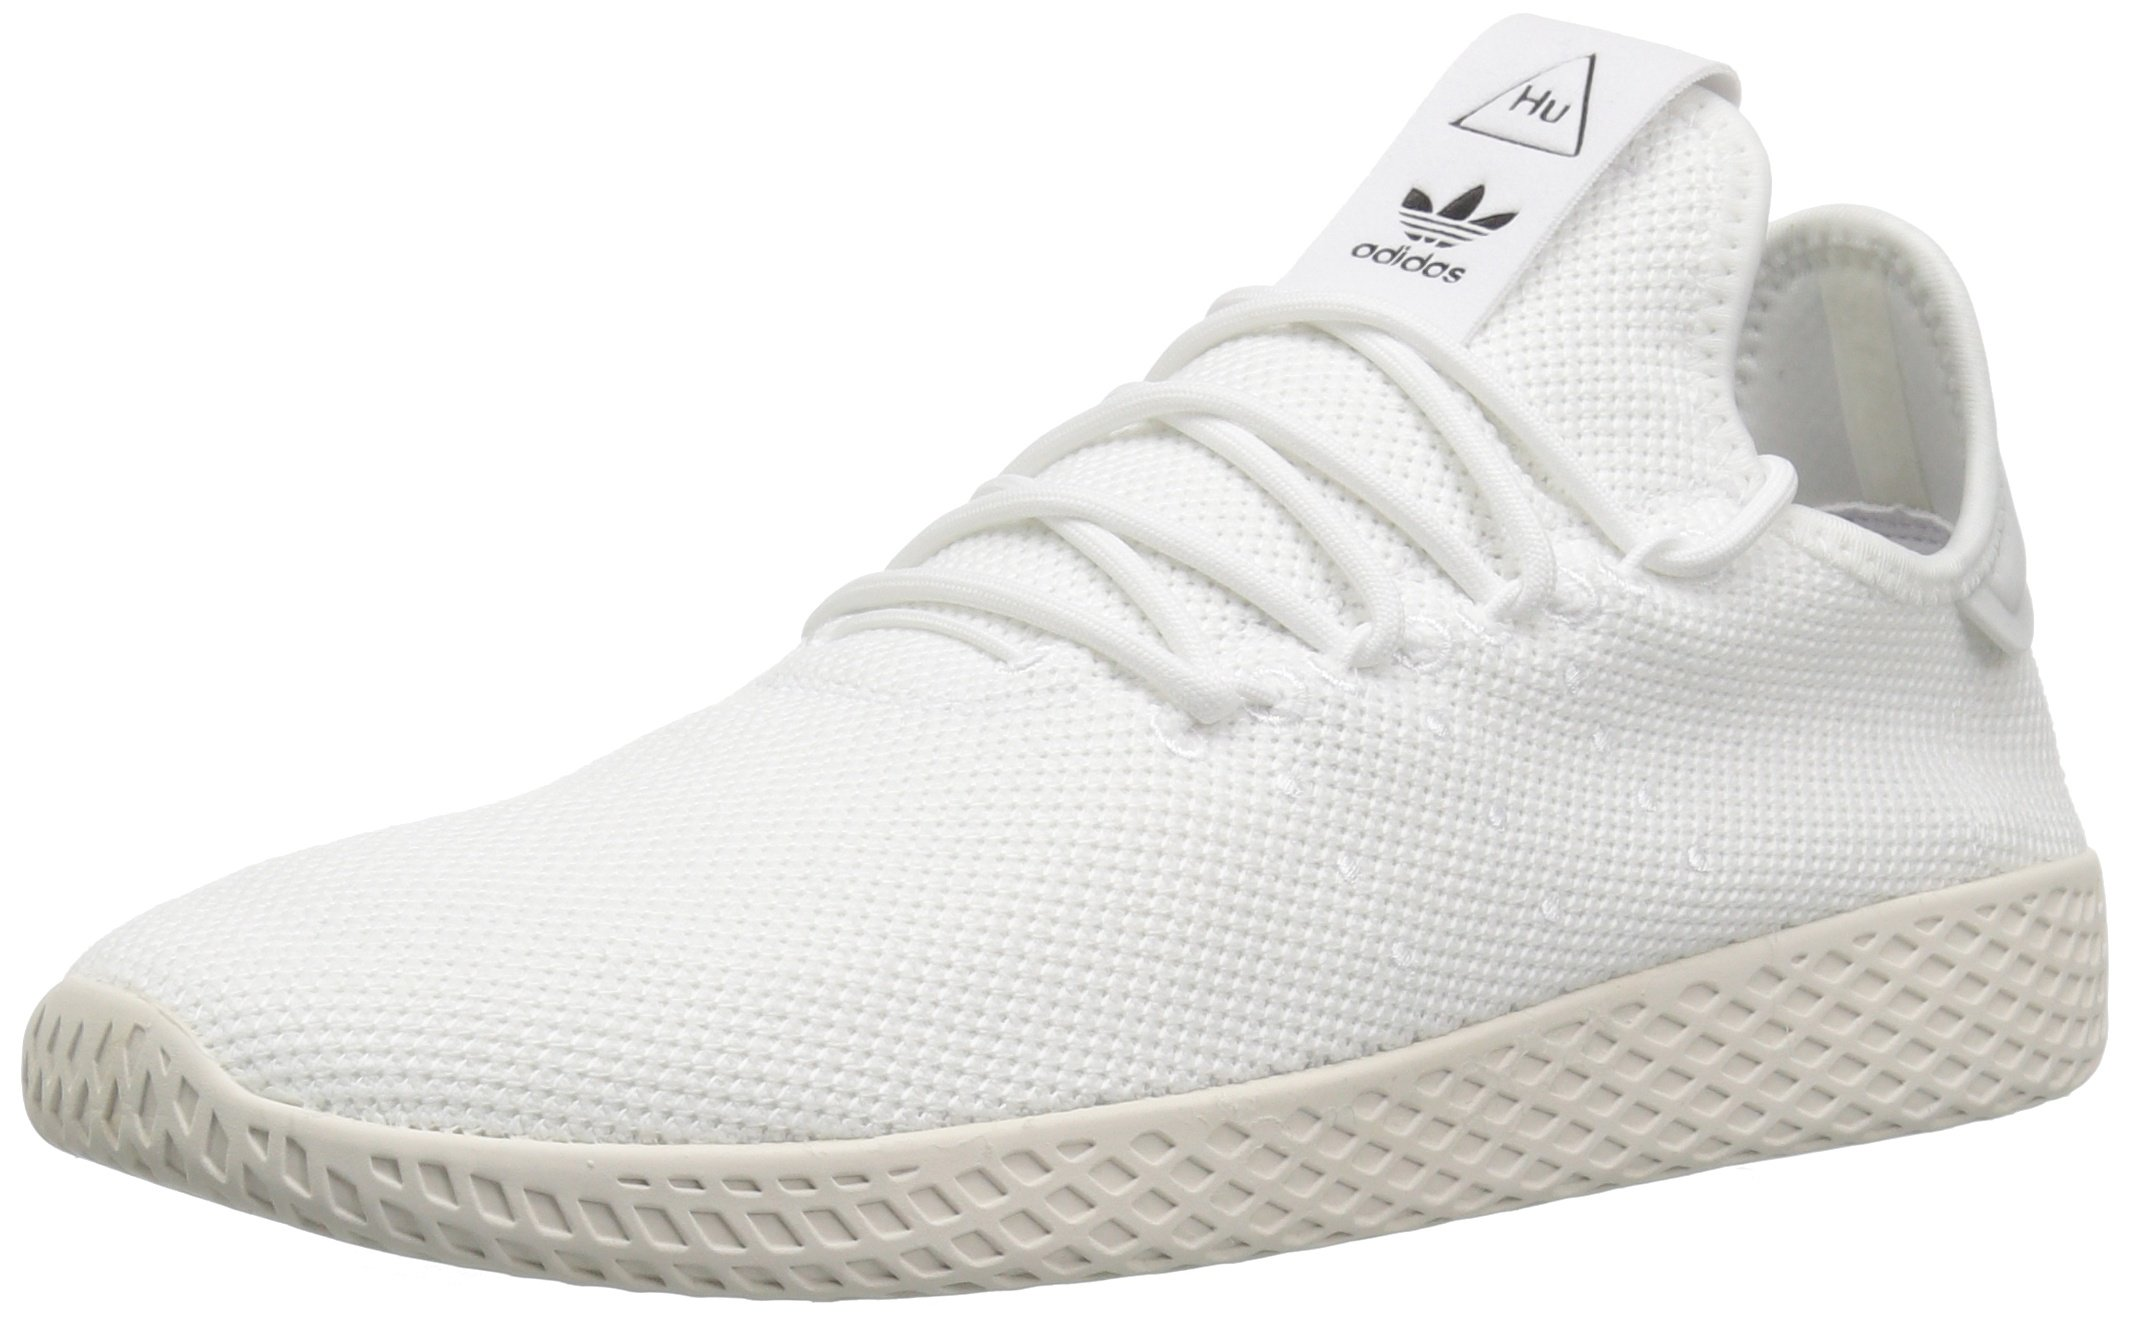 adidas Originals Men's Pw Hu Tennis Shoe, White/Chalk White, 7.5 M US by adidas Originals